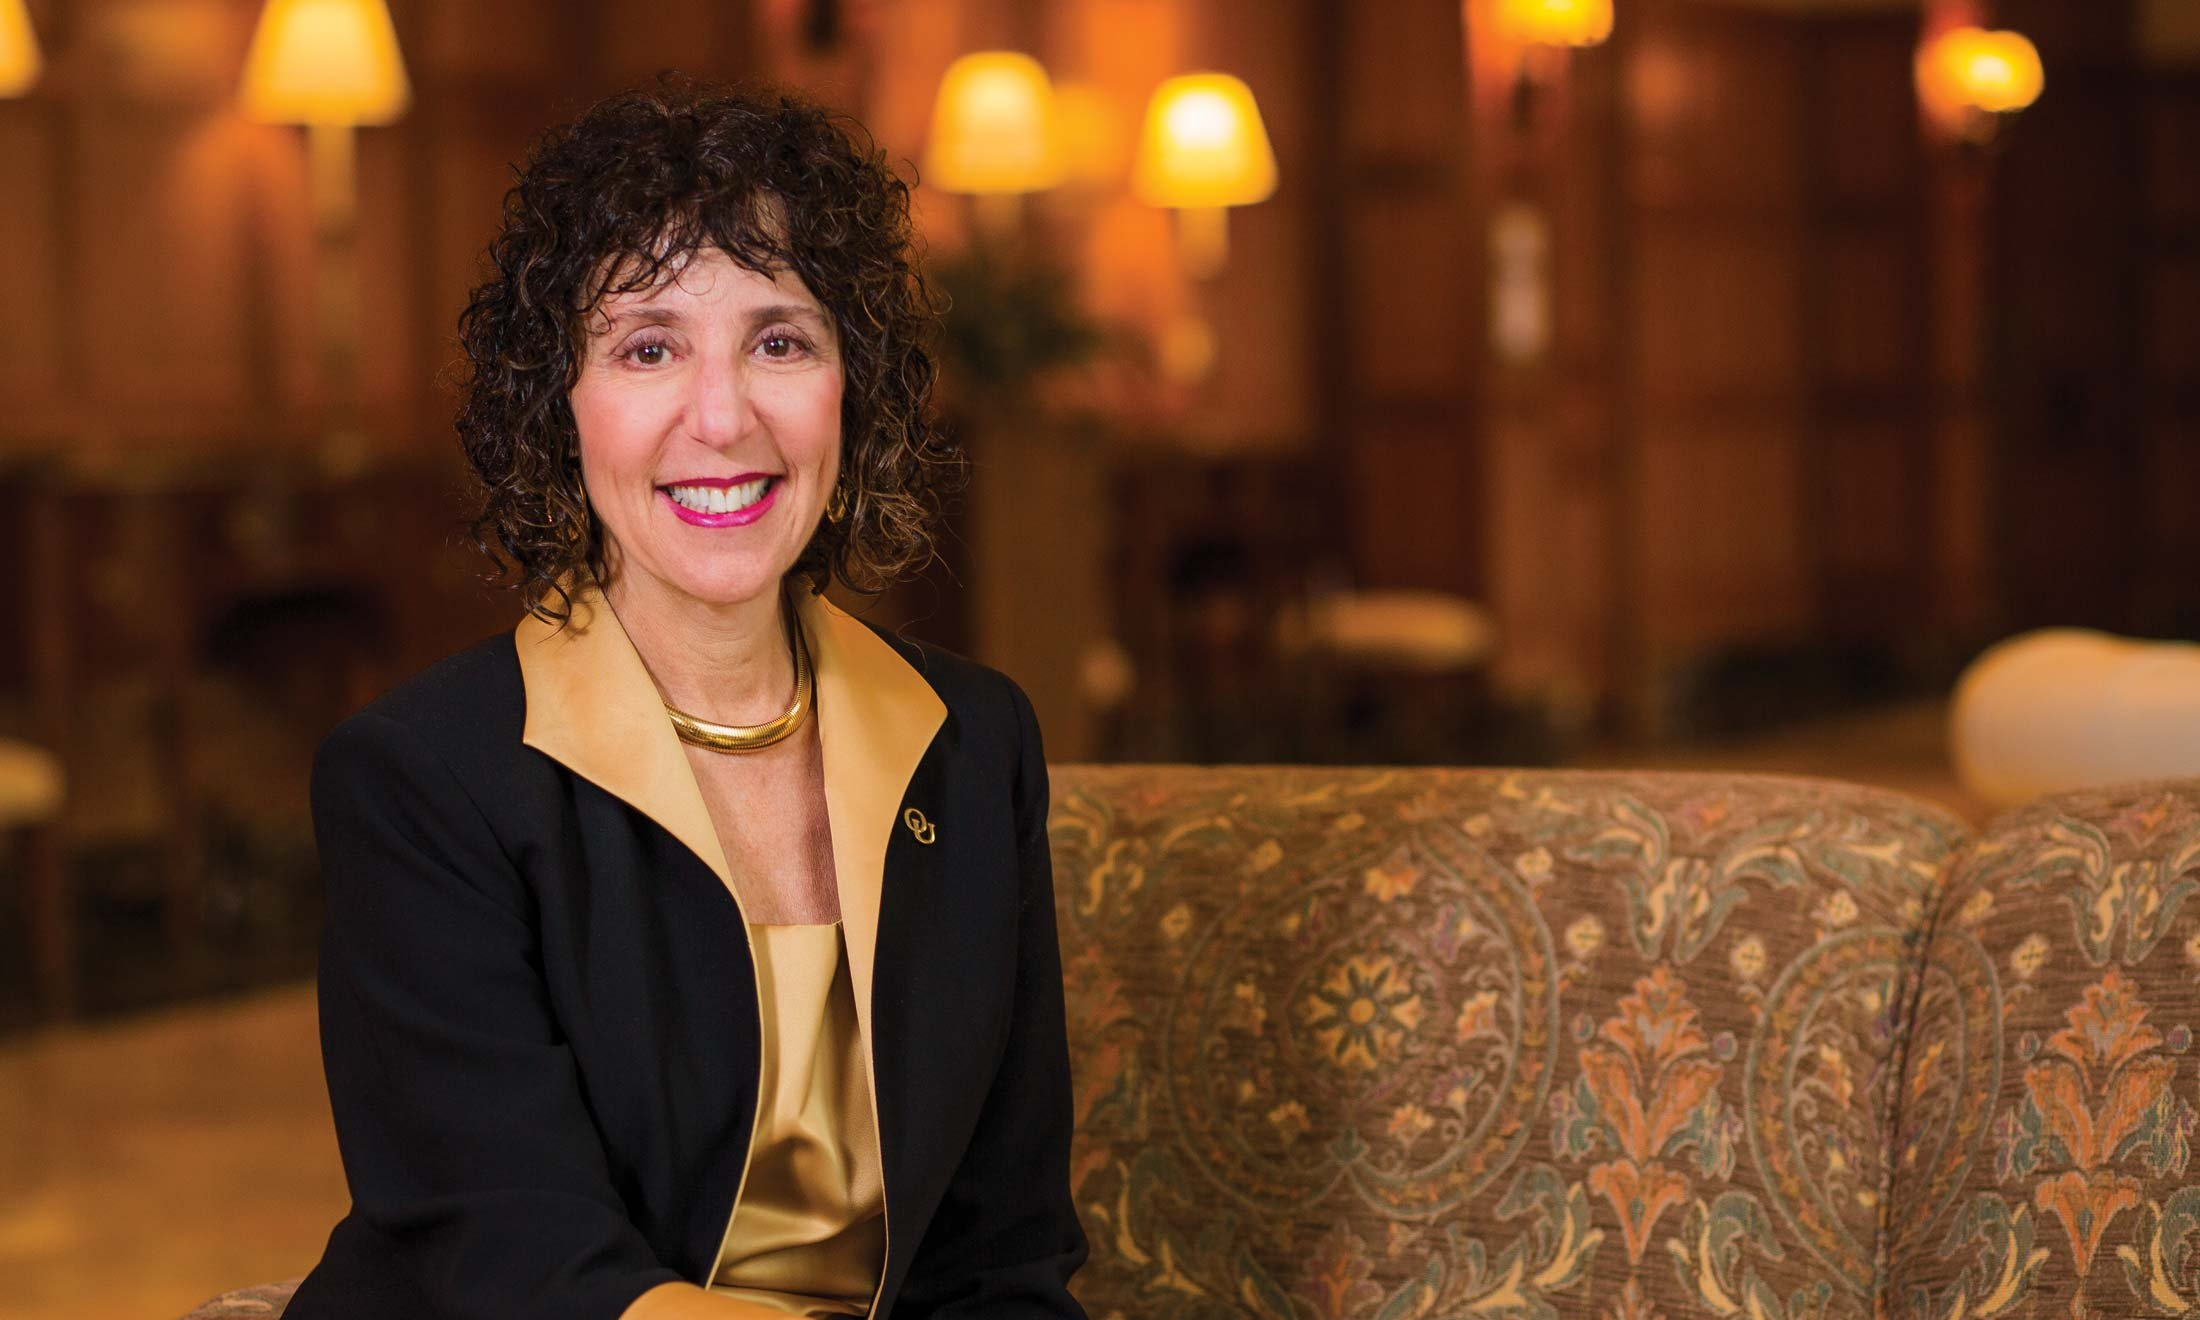 Dr. Ora Hirsch Pescovitz, Oakland University's seventh president sitting on a couch